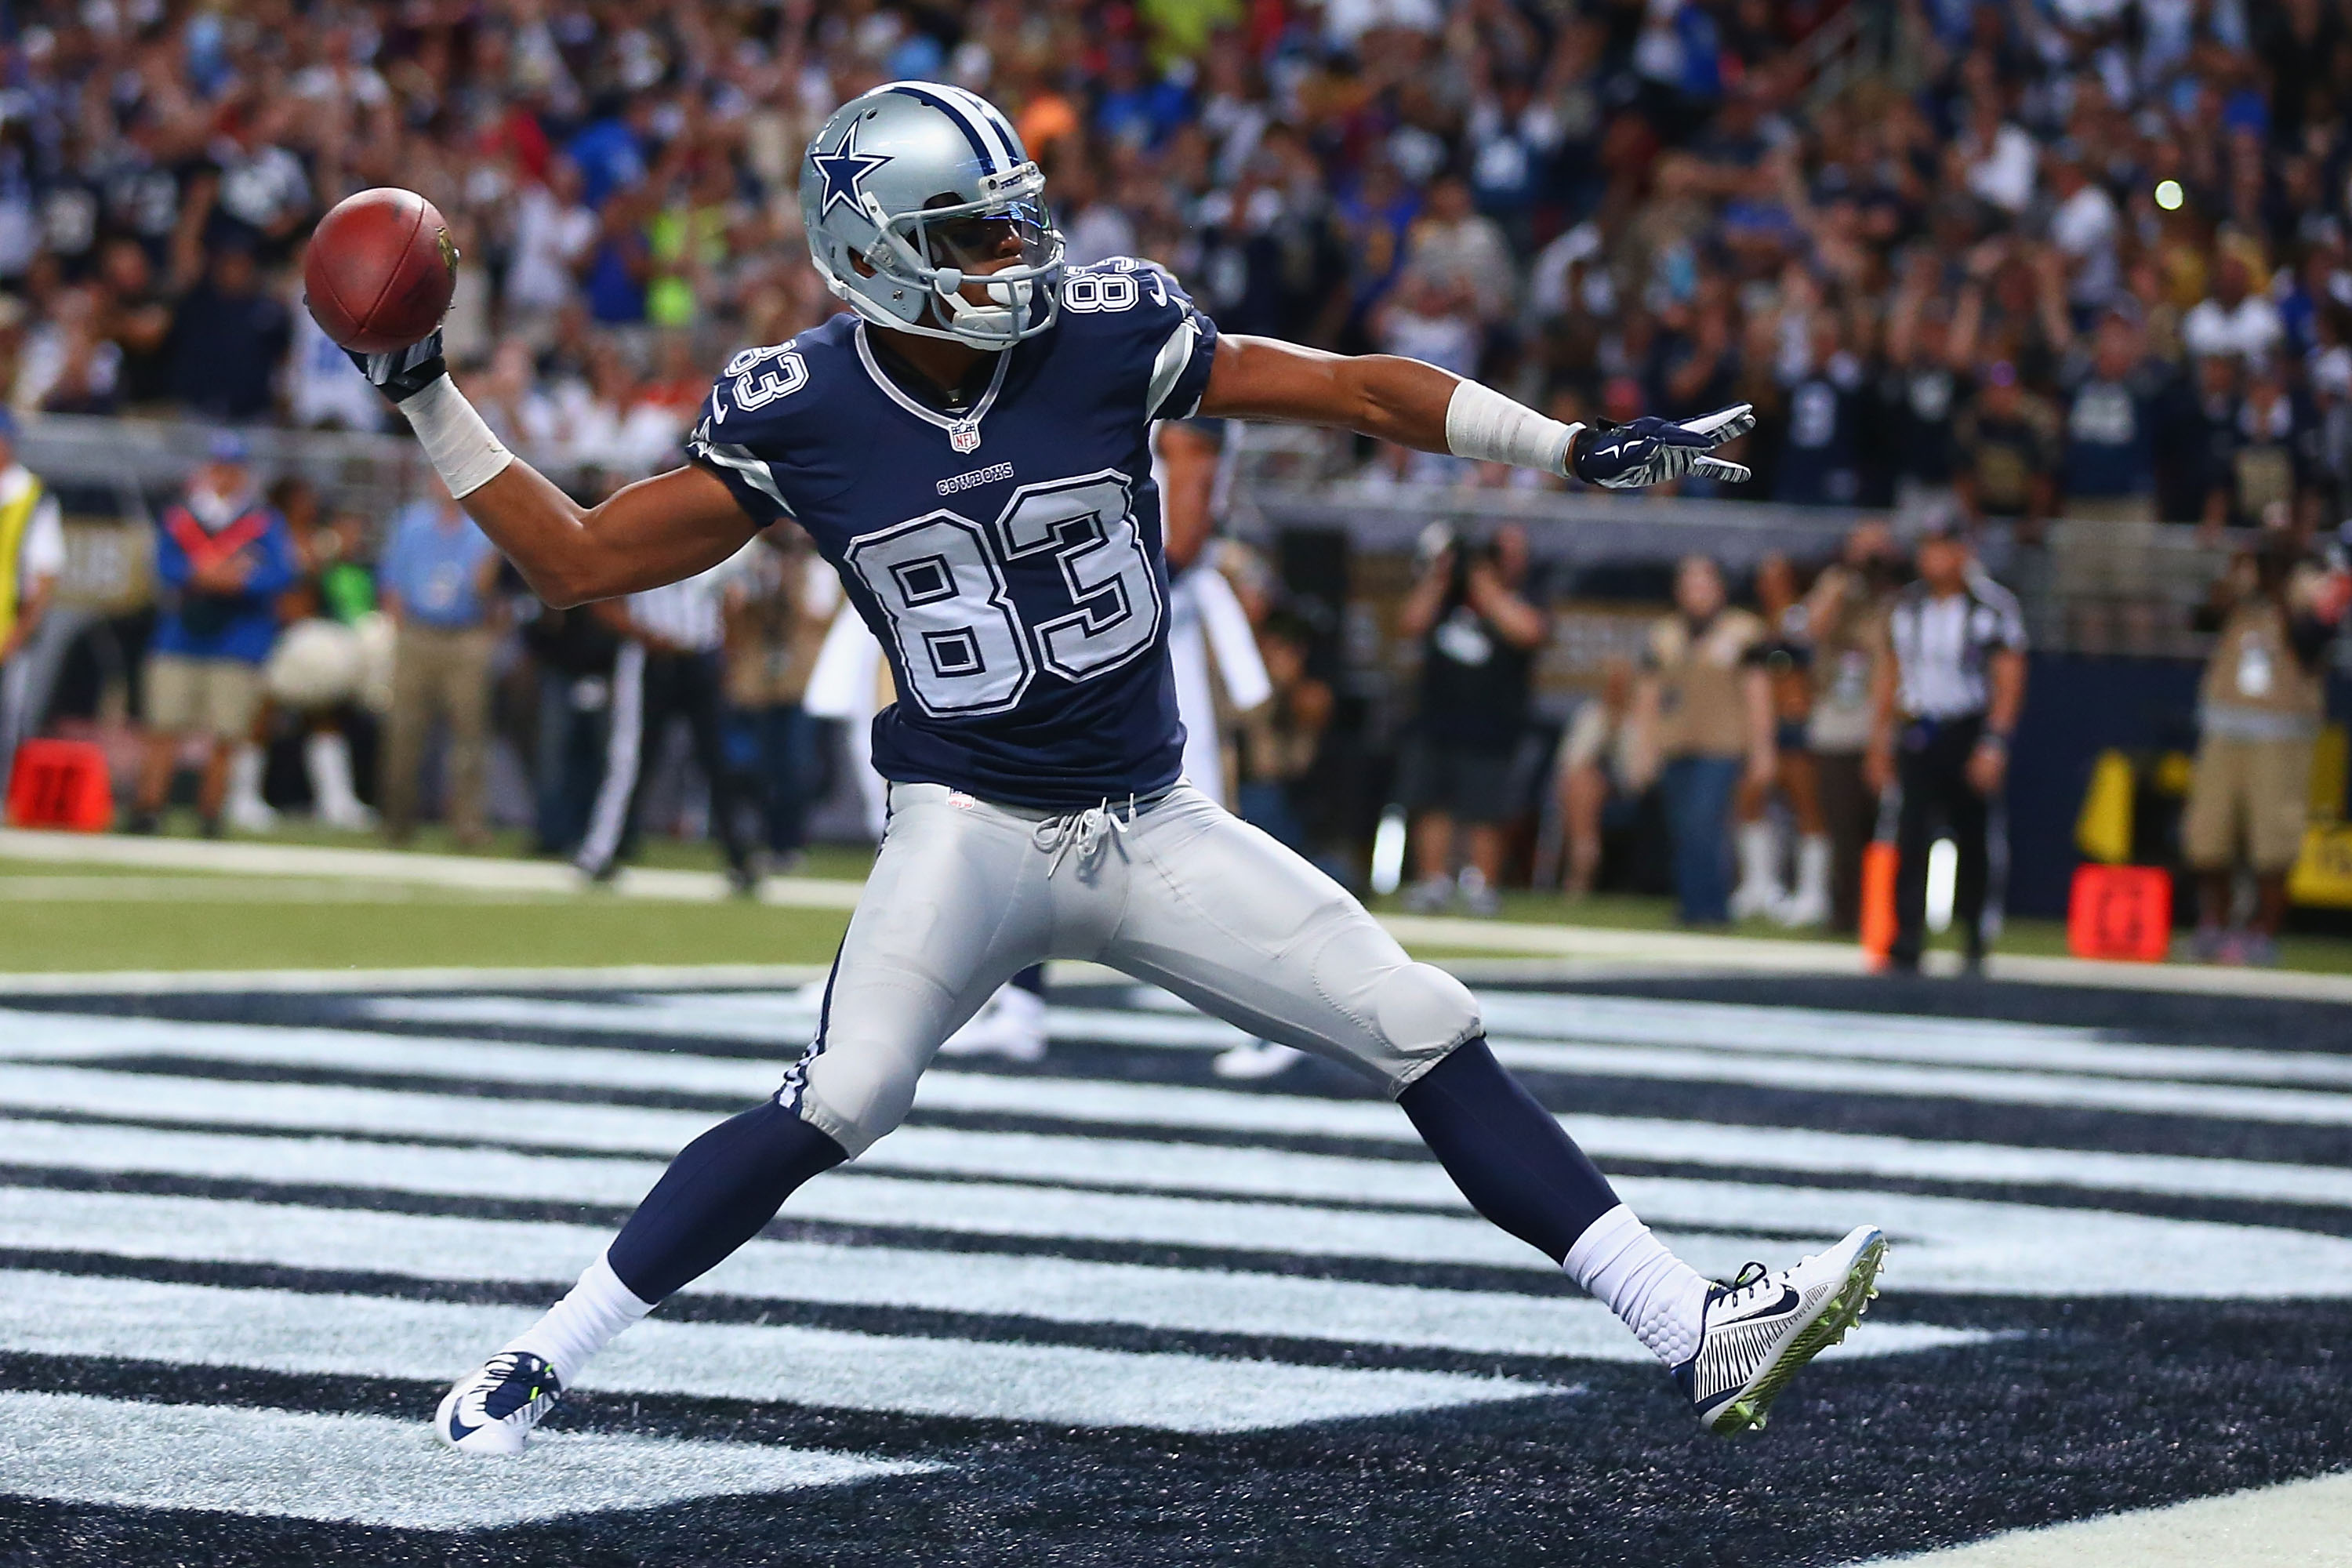 Terrance-williams-ready-for-a-resurgence-2